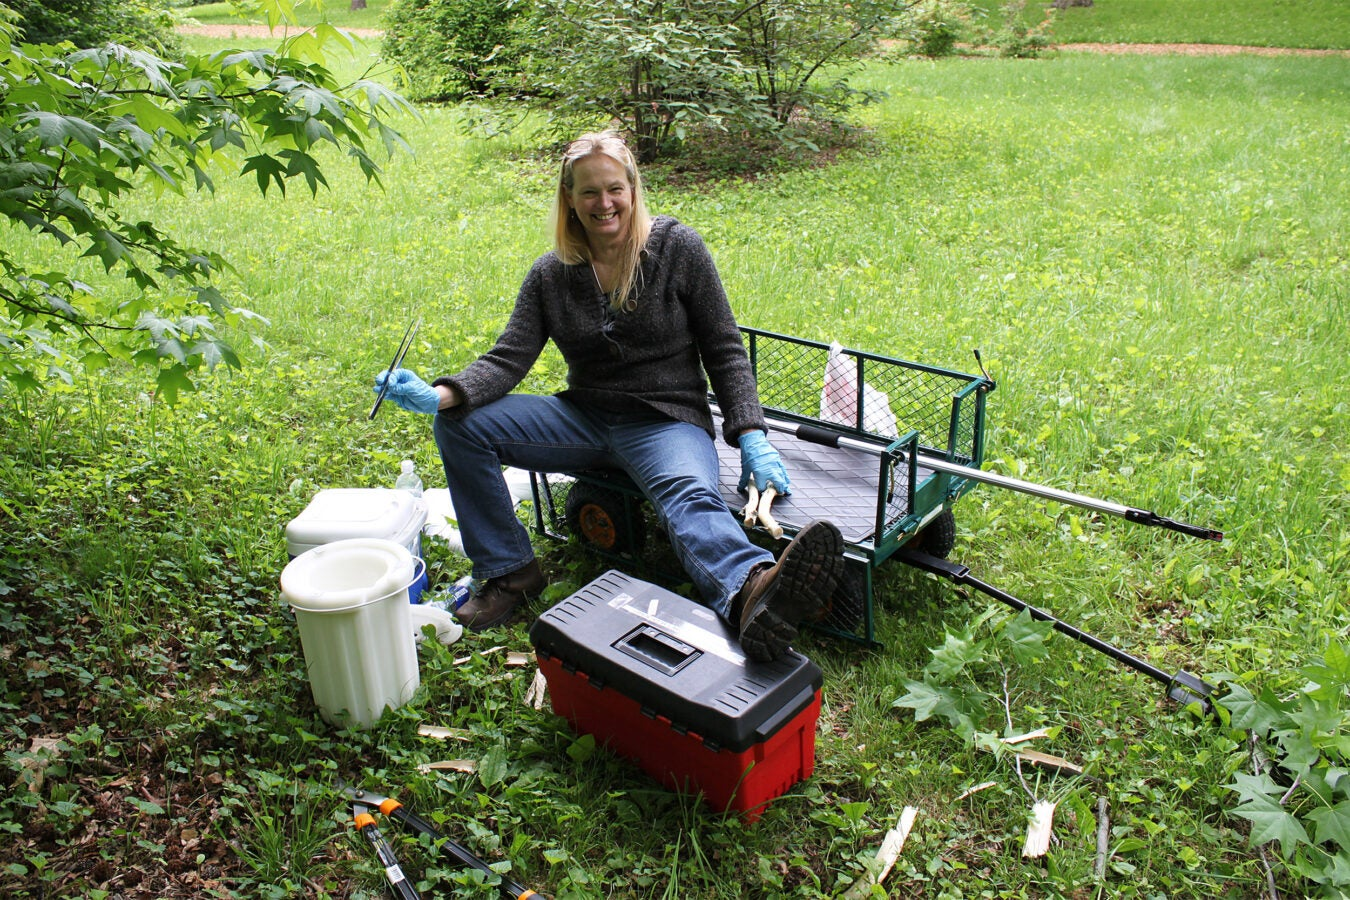 Sue-Arnold: Suzanne Gerttula, research assistant with Andrew Groover, sits on a transport cart with equipment including pole pruners and liquid nitrogen to study a sweetgum (Liquidambar styraciflua) tree. Photo by Andrew Groover